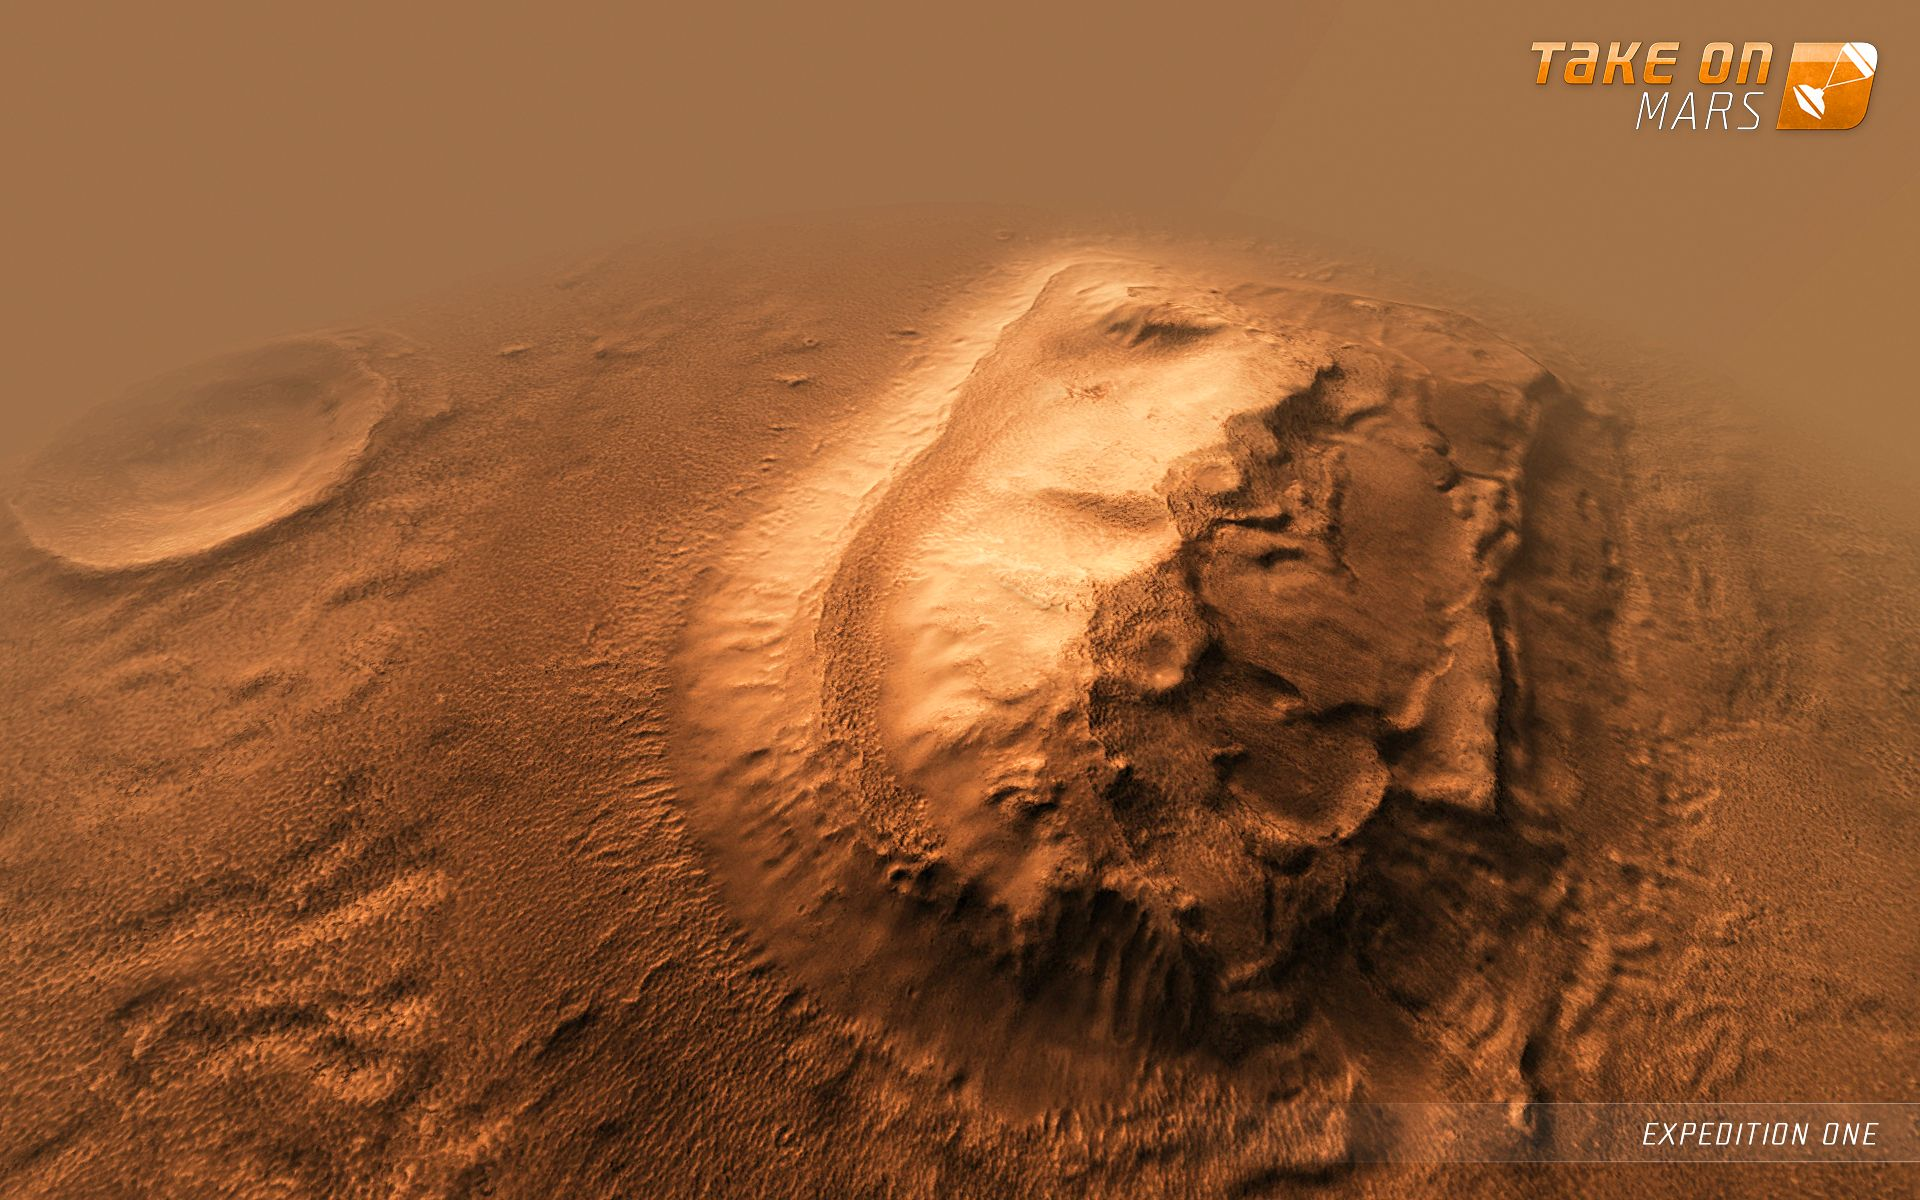 Take On Mars To Get Manned Mars Mission Expansion